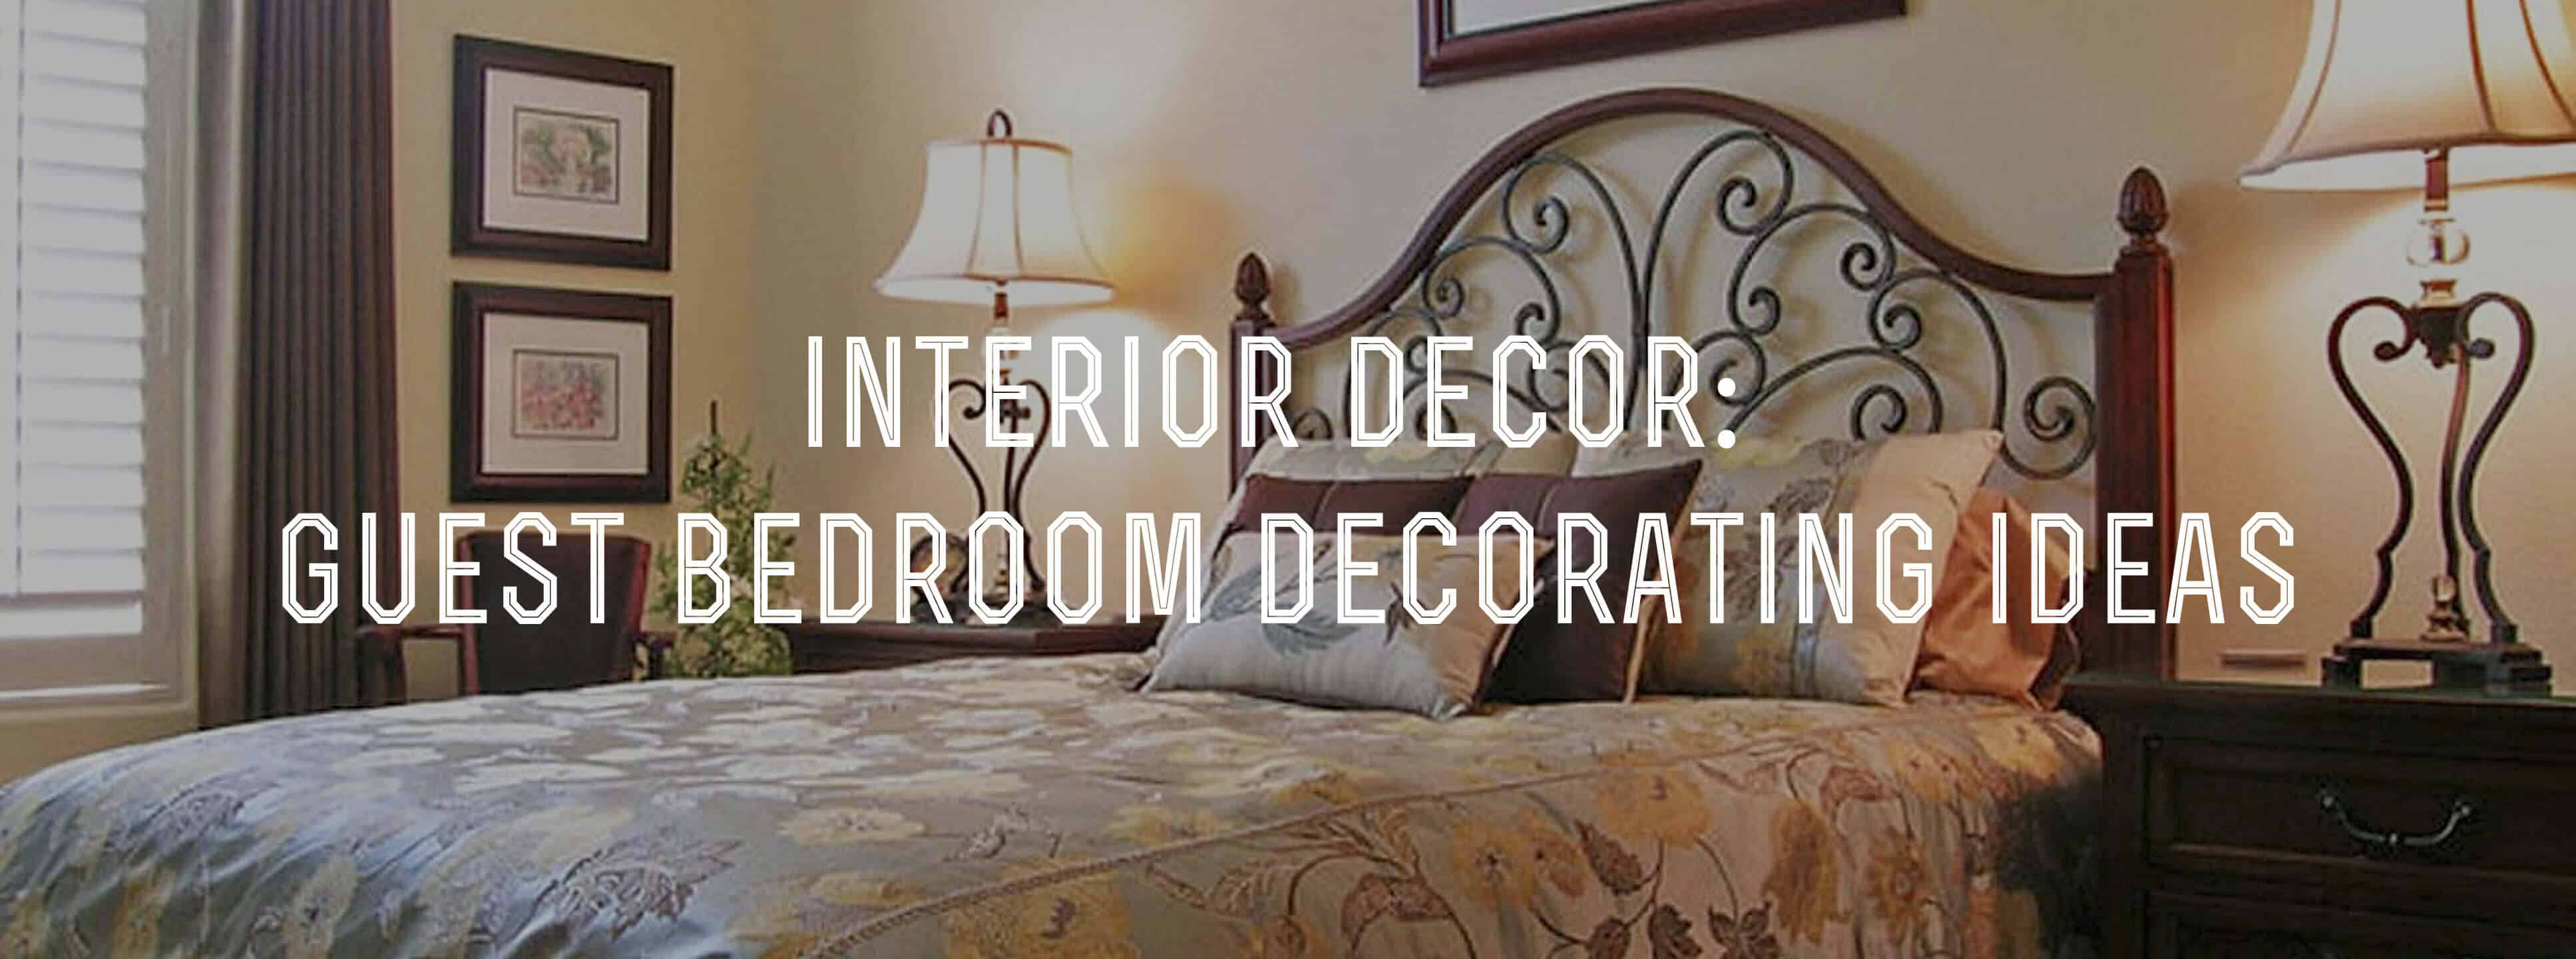 Interior Decor Welcoming Guest Bedroom Decorating Ideas